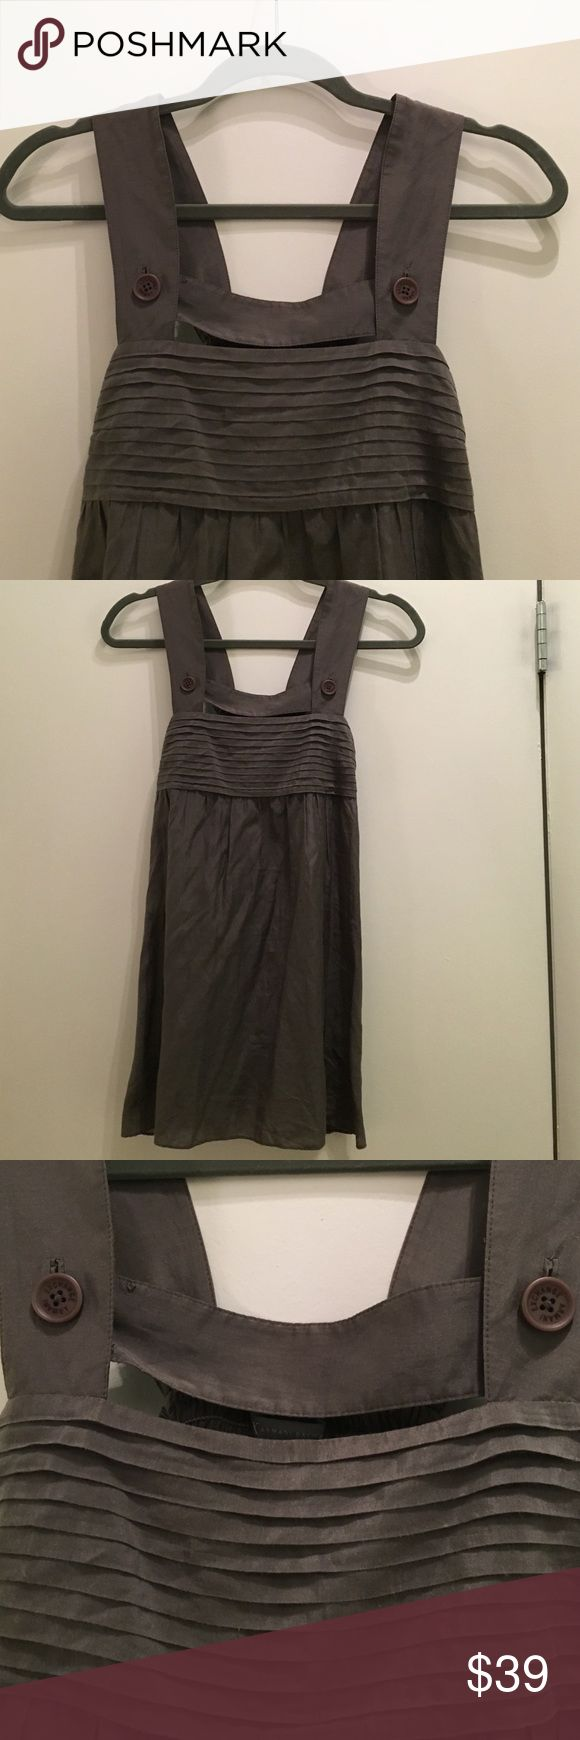 🔥ARMANI EXCHANGE party top! Never worn! Flowy Armani Exchange top with subtle slit at chest, long and flowy and can easily be worn with jeans, leggings, or shorts. Similar to styles at Zara and j crew! Armani Exchange Tops Tank Tops